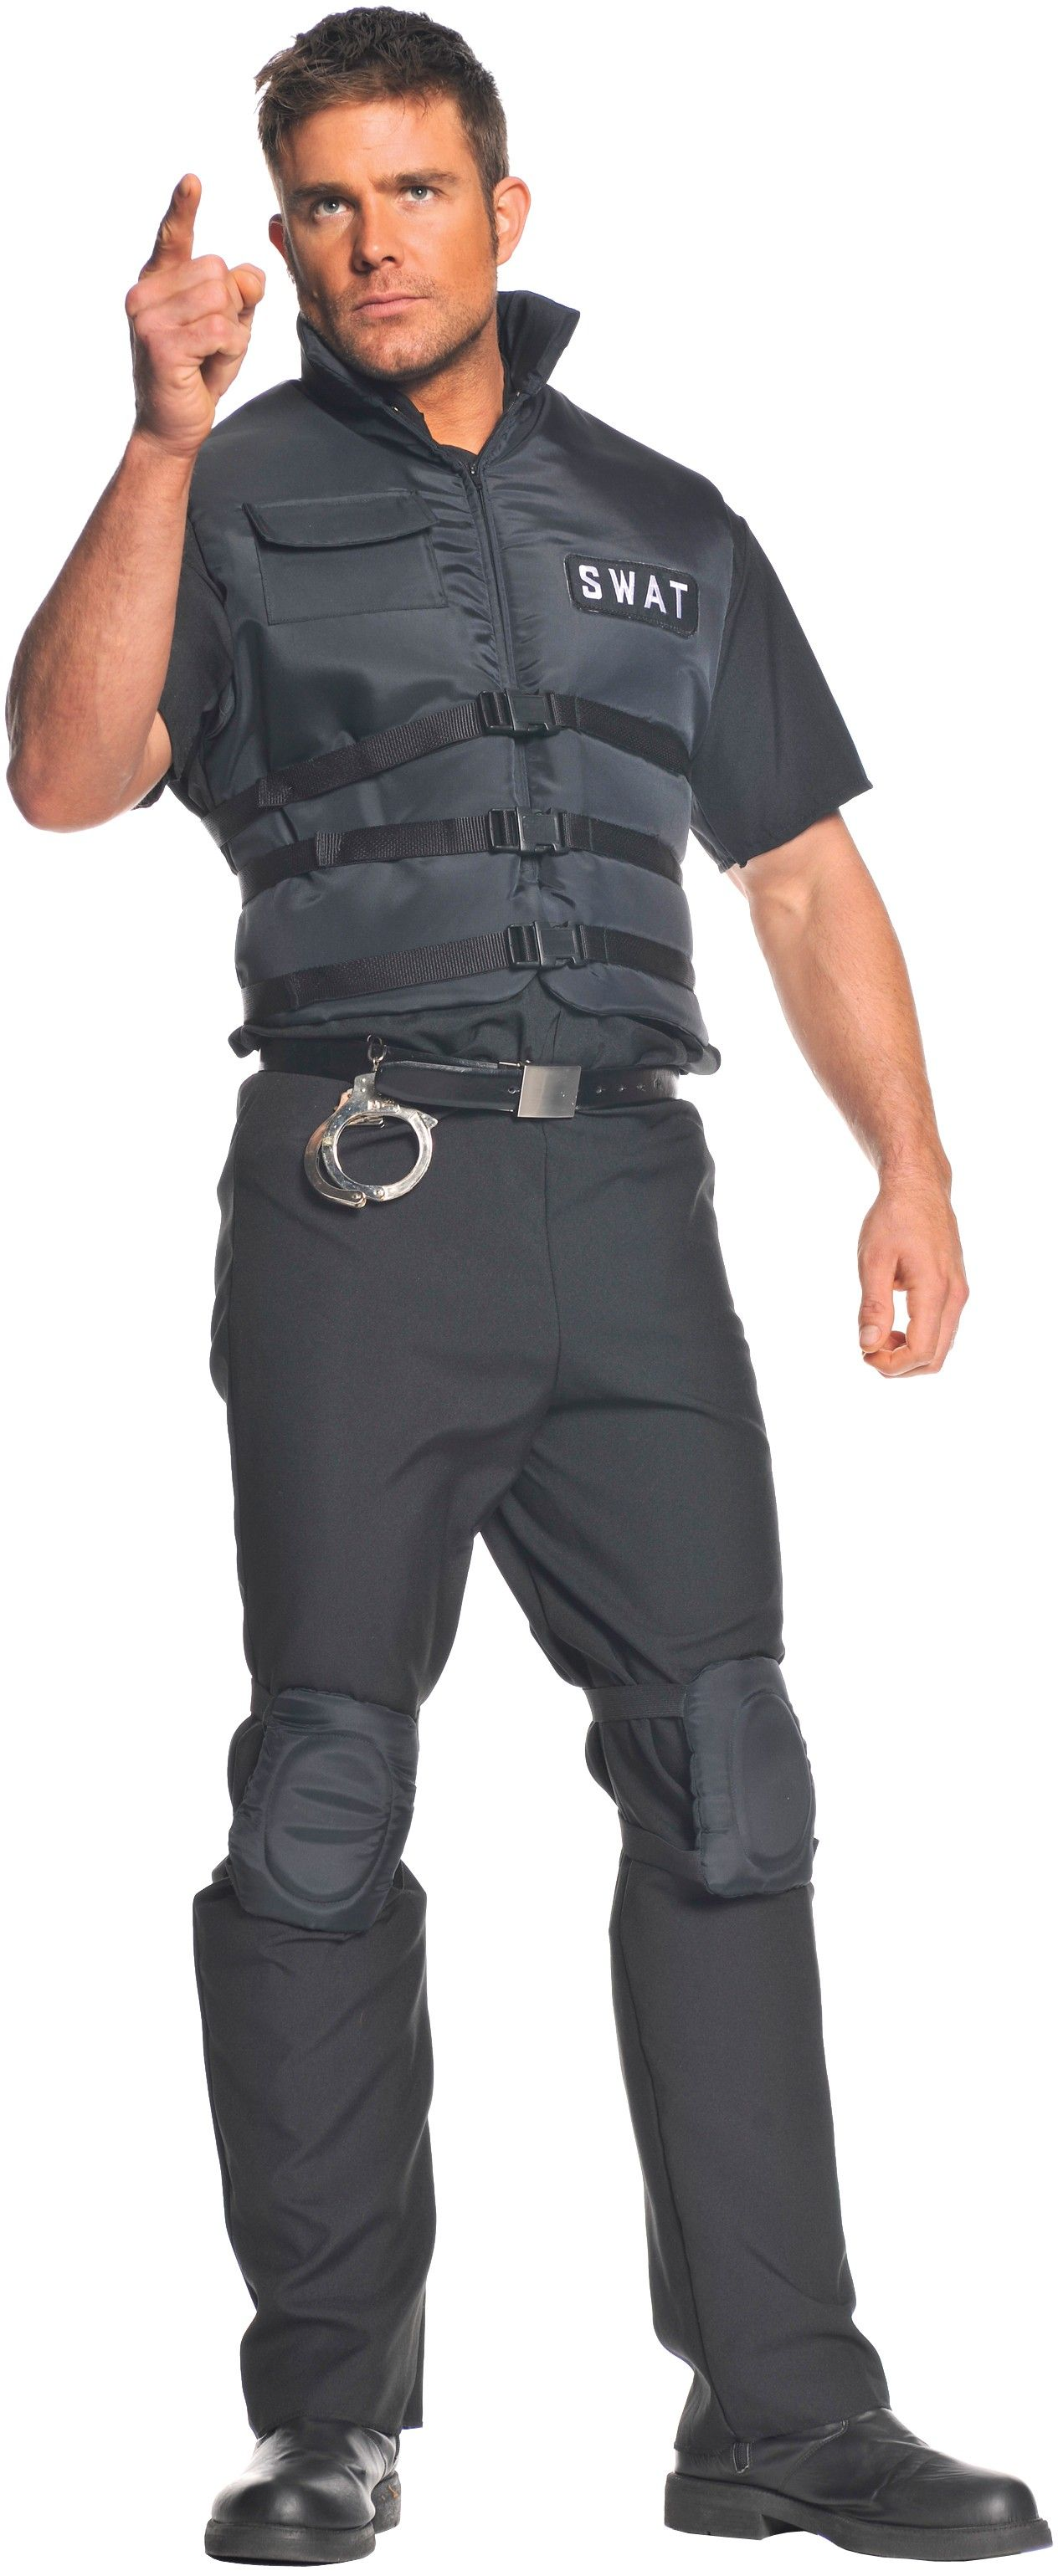 swat adult costume standard - Swat Costumes For Halloween